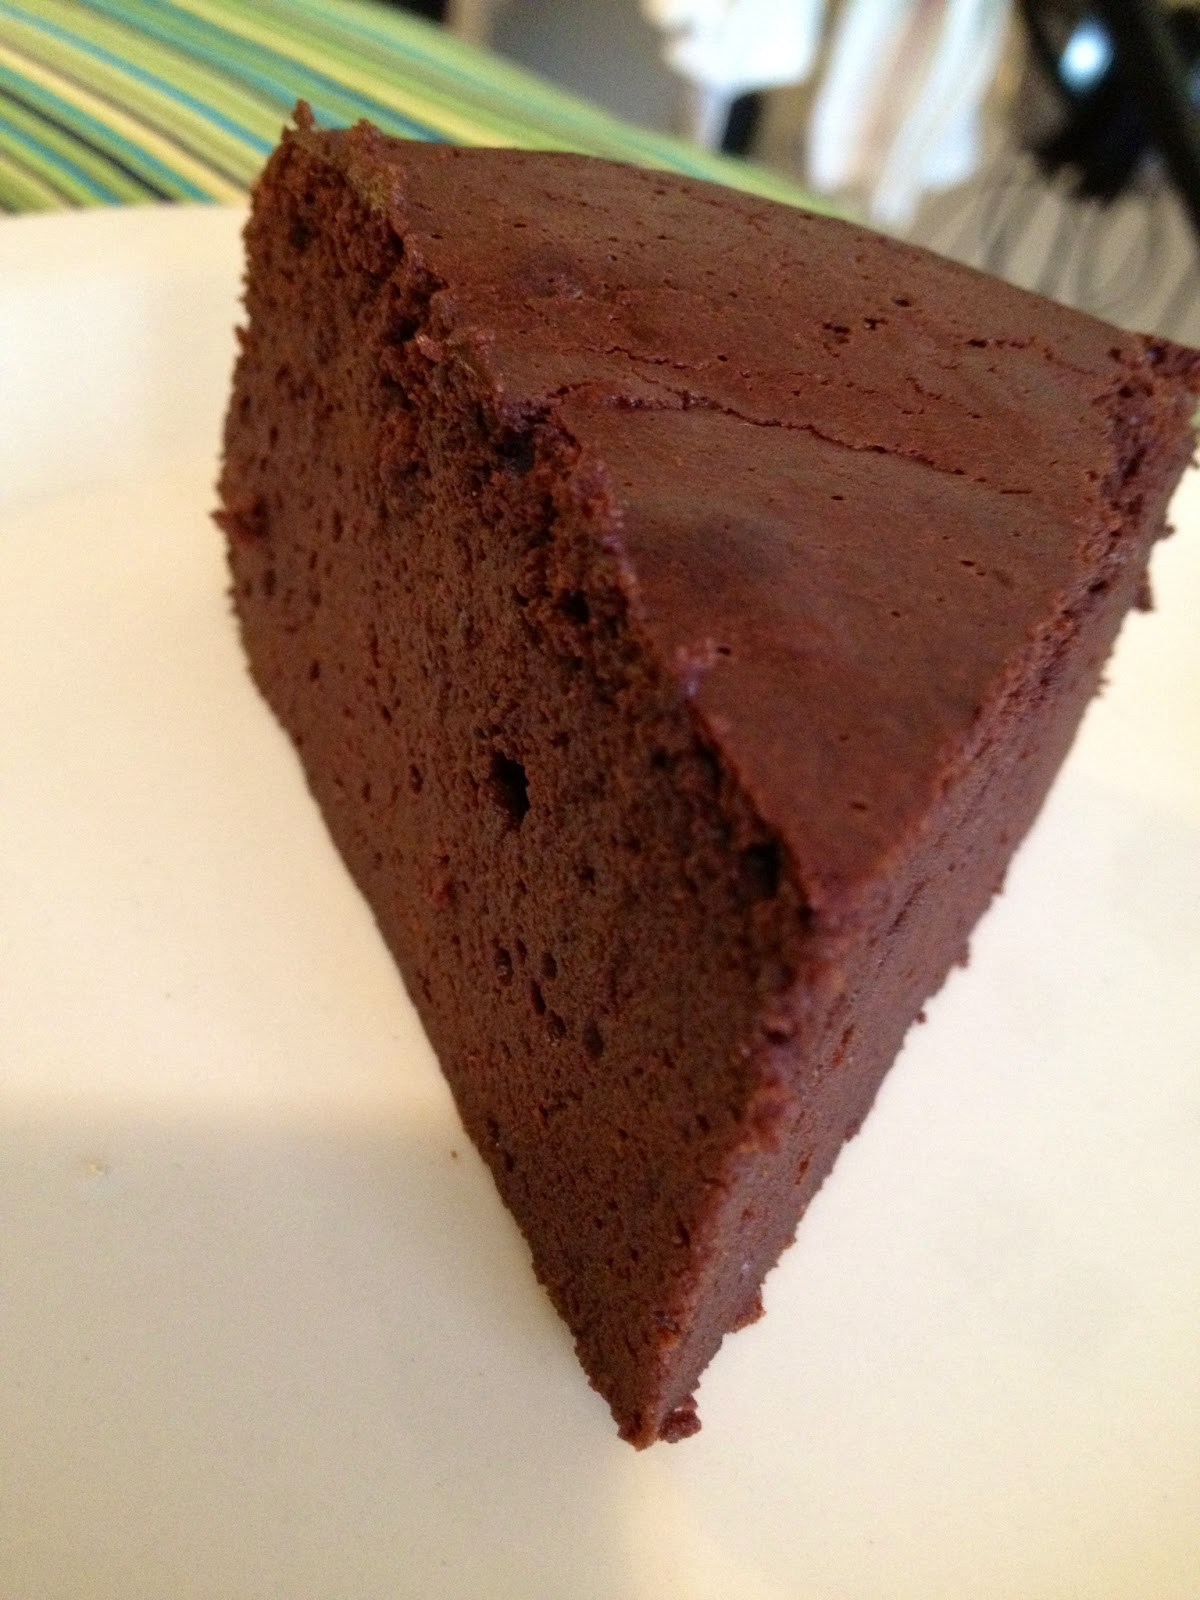 Food Locker: Food blogging and flourless chocolate torte